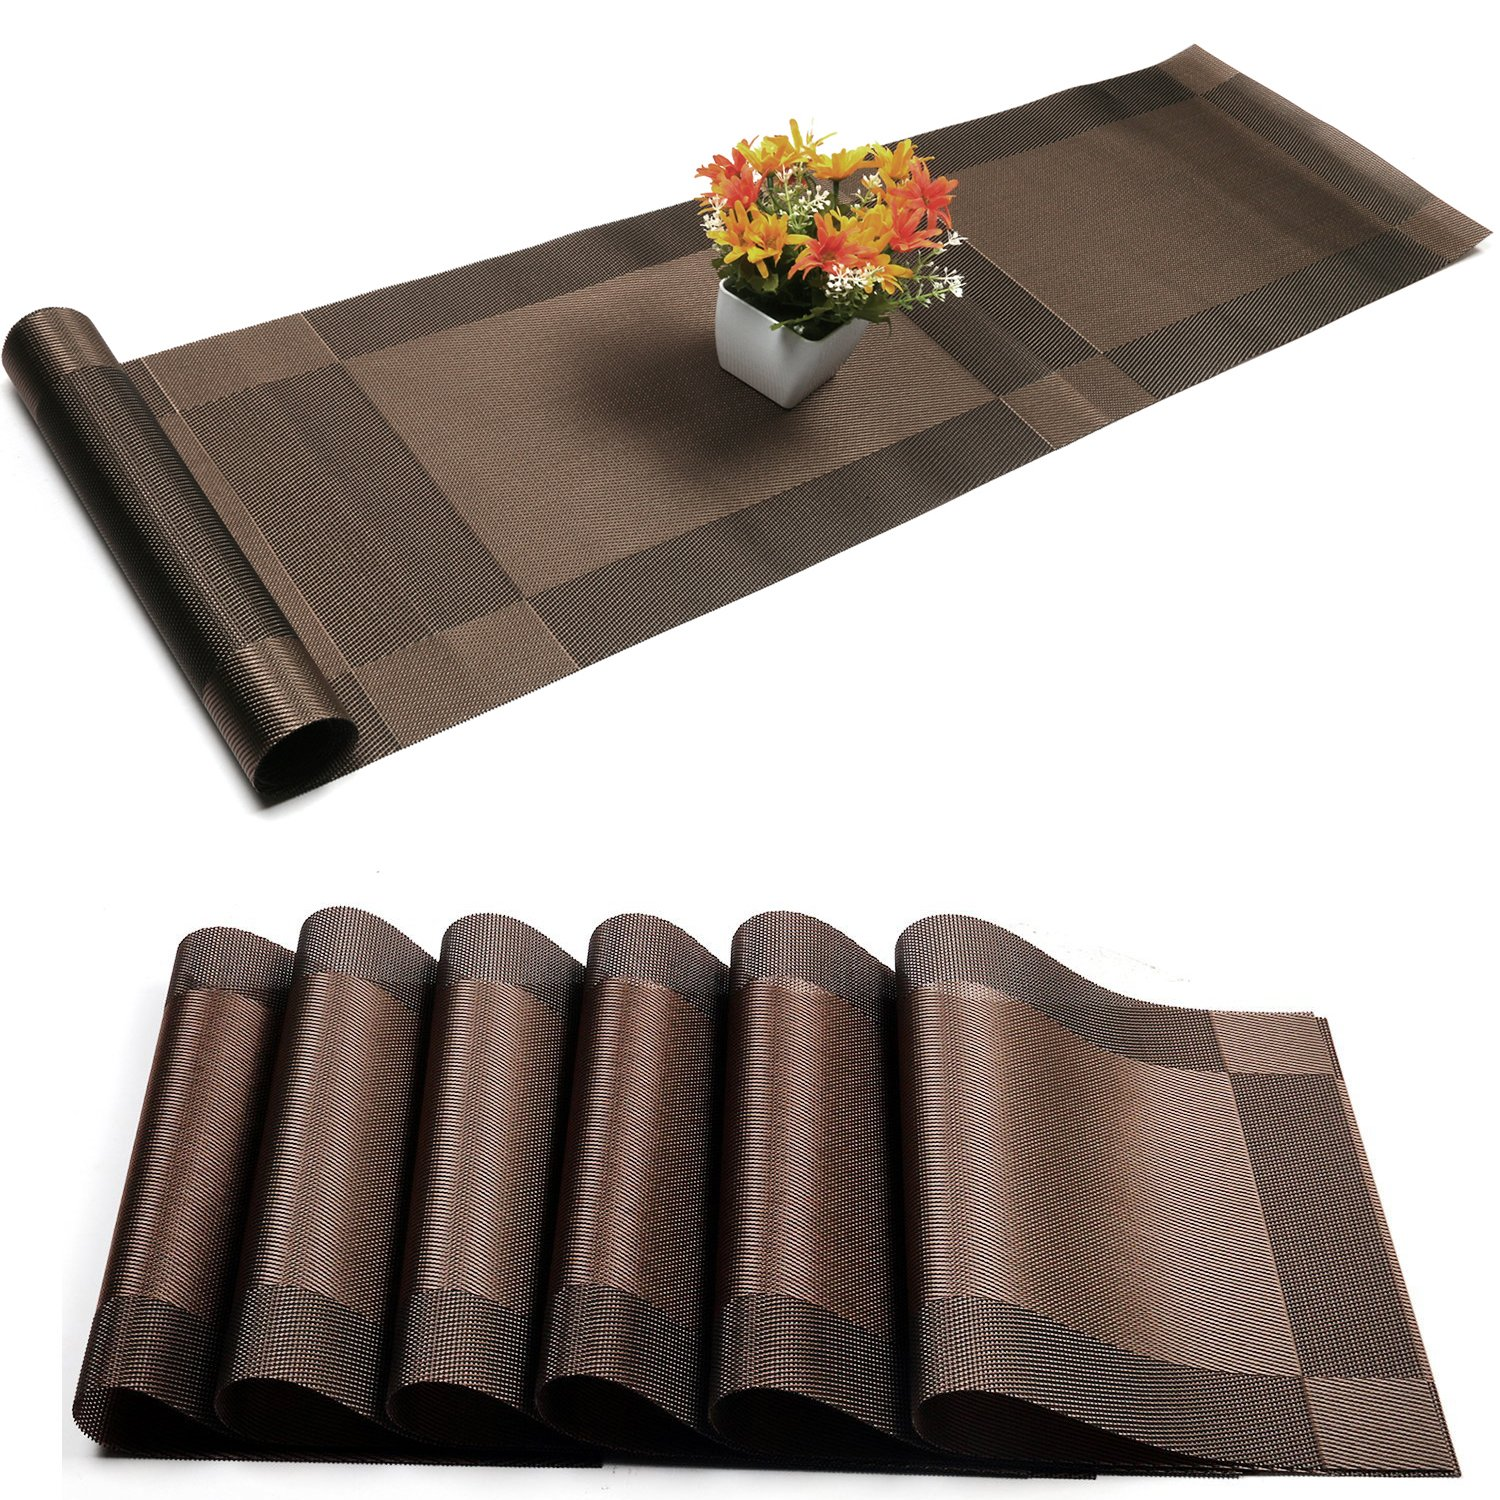 Placemat with Compatible Table Runner,U'Artlines Crossweave Insulation Placemat Washable Table Mats Set (6pcs placemats+Table runner, Brown)